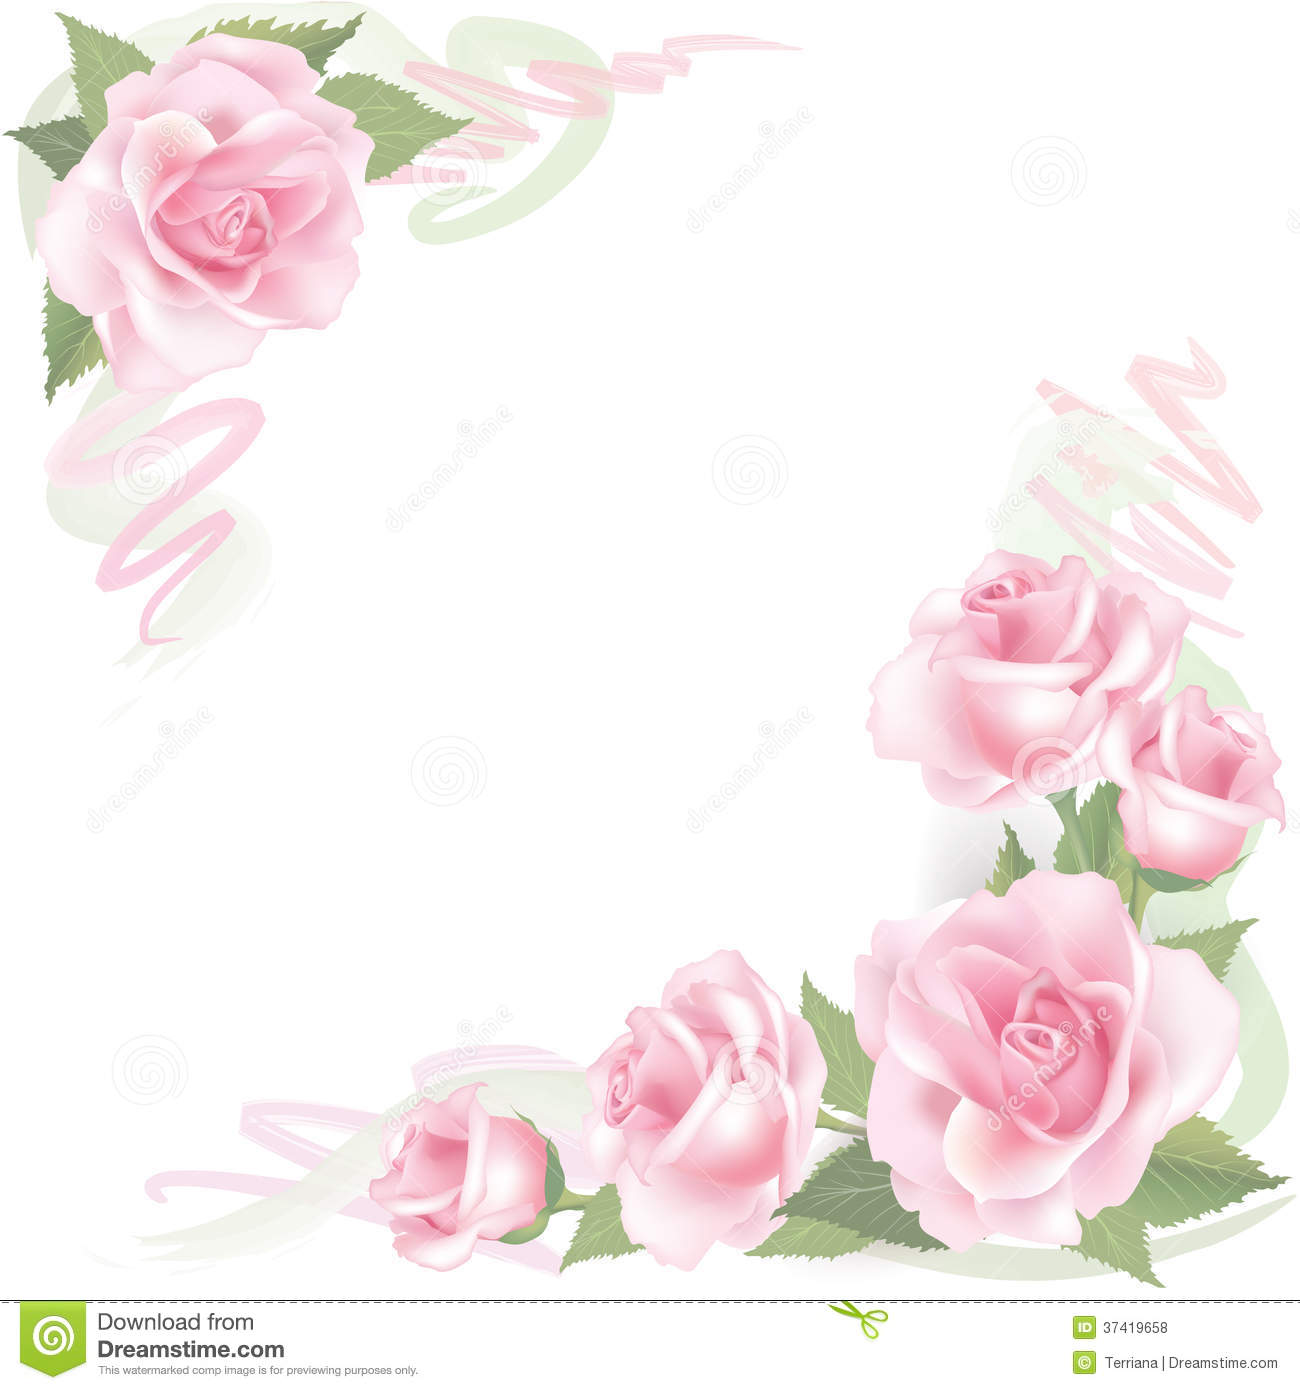 Flower rose frame on white background floral decor stock for Decoration avec des roses